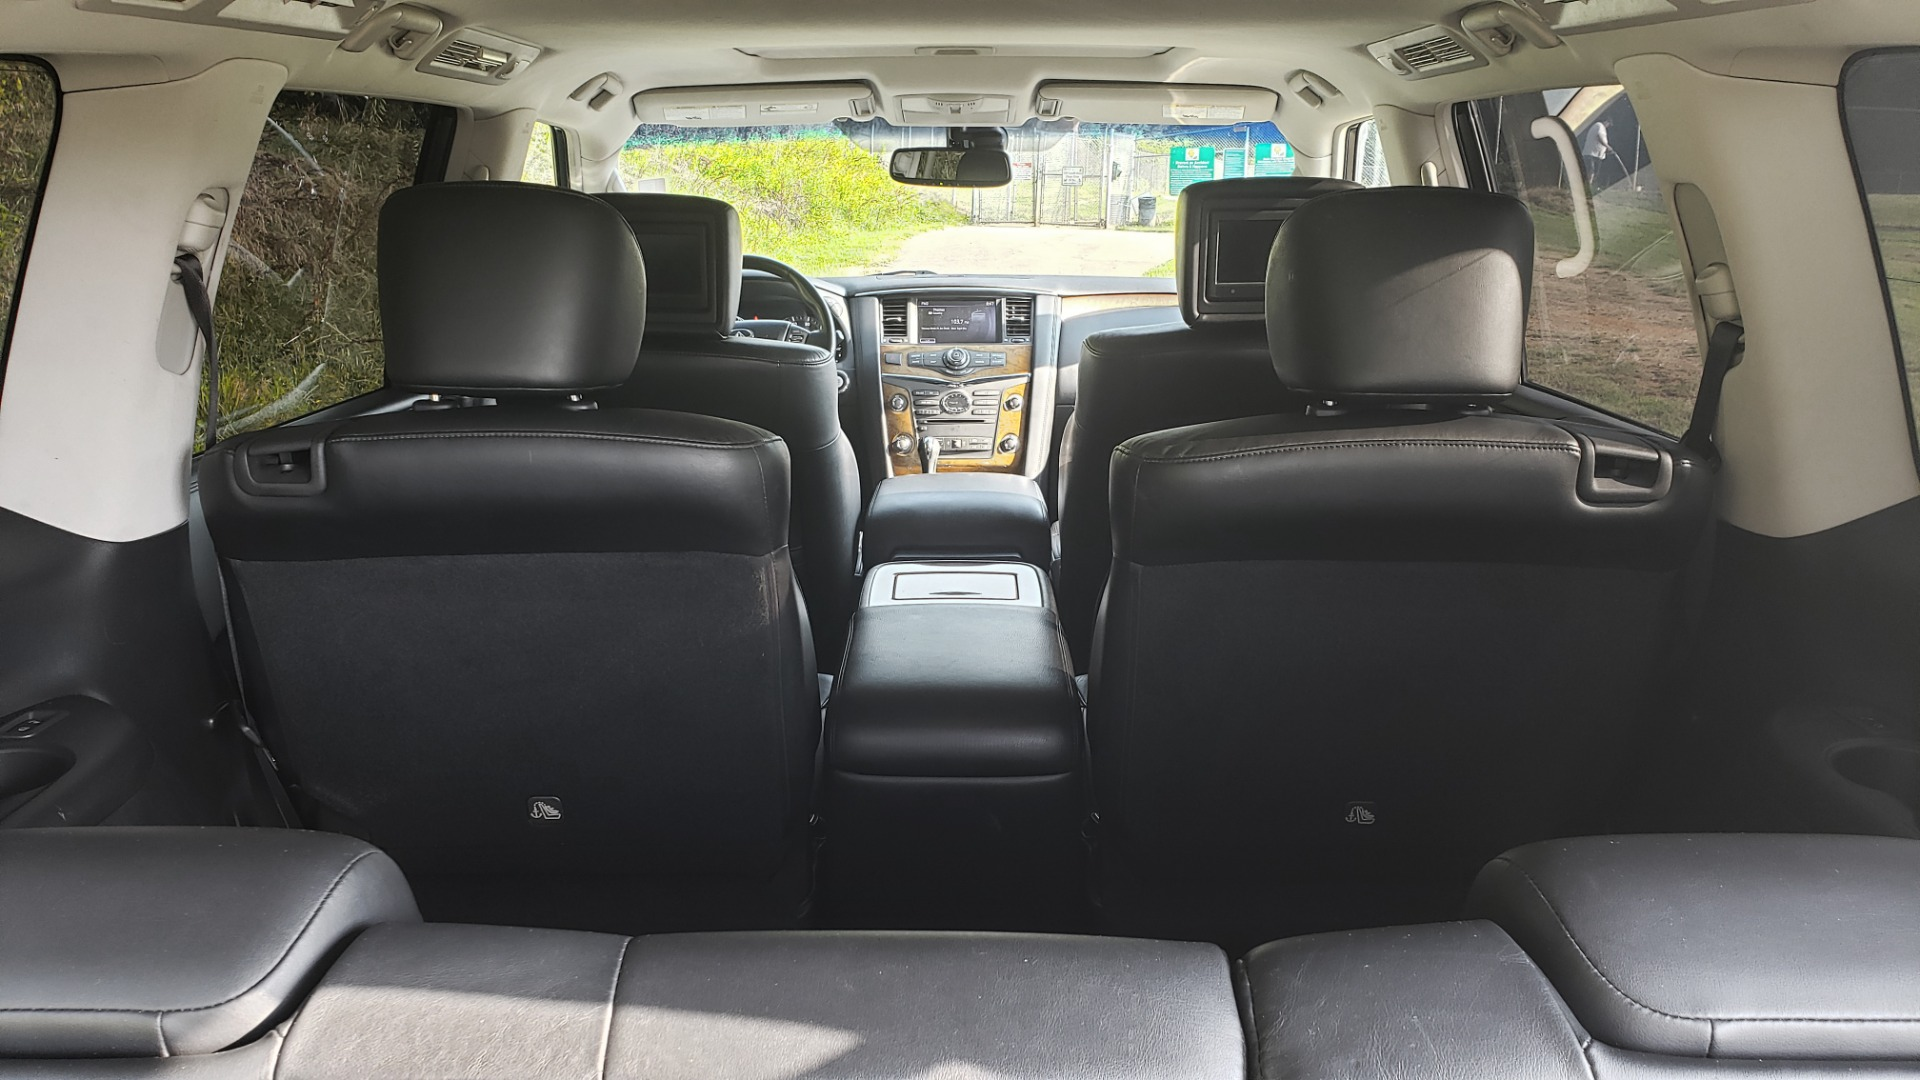 Used 2013 INFINITI QX56 NAV / SUNROOF / BOSE / THEATER / 3-ROW / REARVIEW for sale $21,495 at Formula Imports in Charlotte NC 28227 19